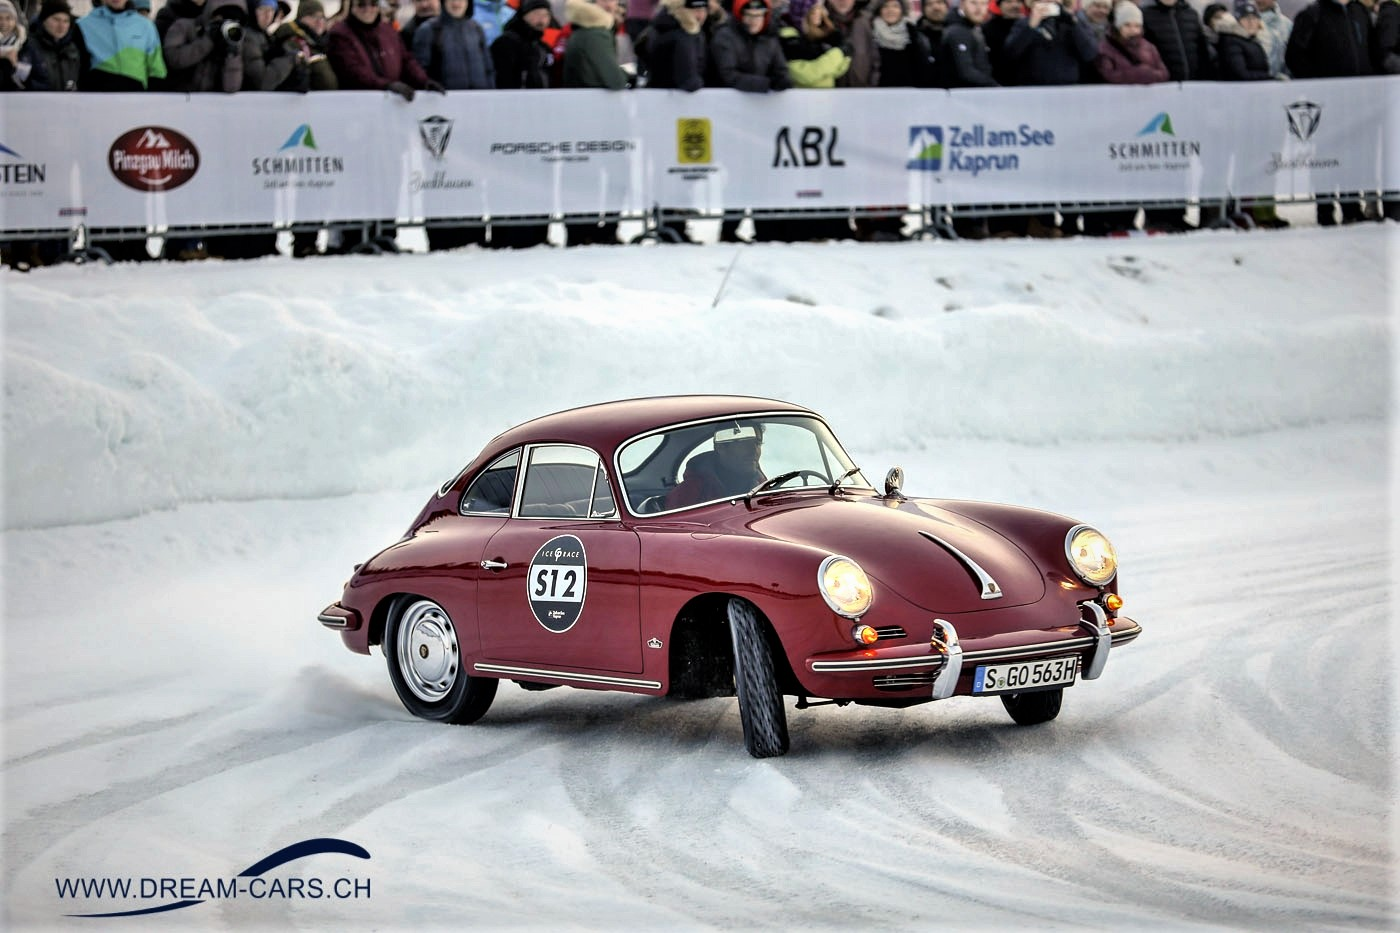 Porsche 356 am GP Ice Race in Zell am See 2019